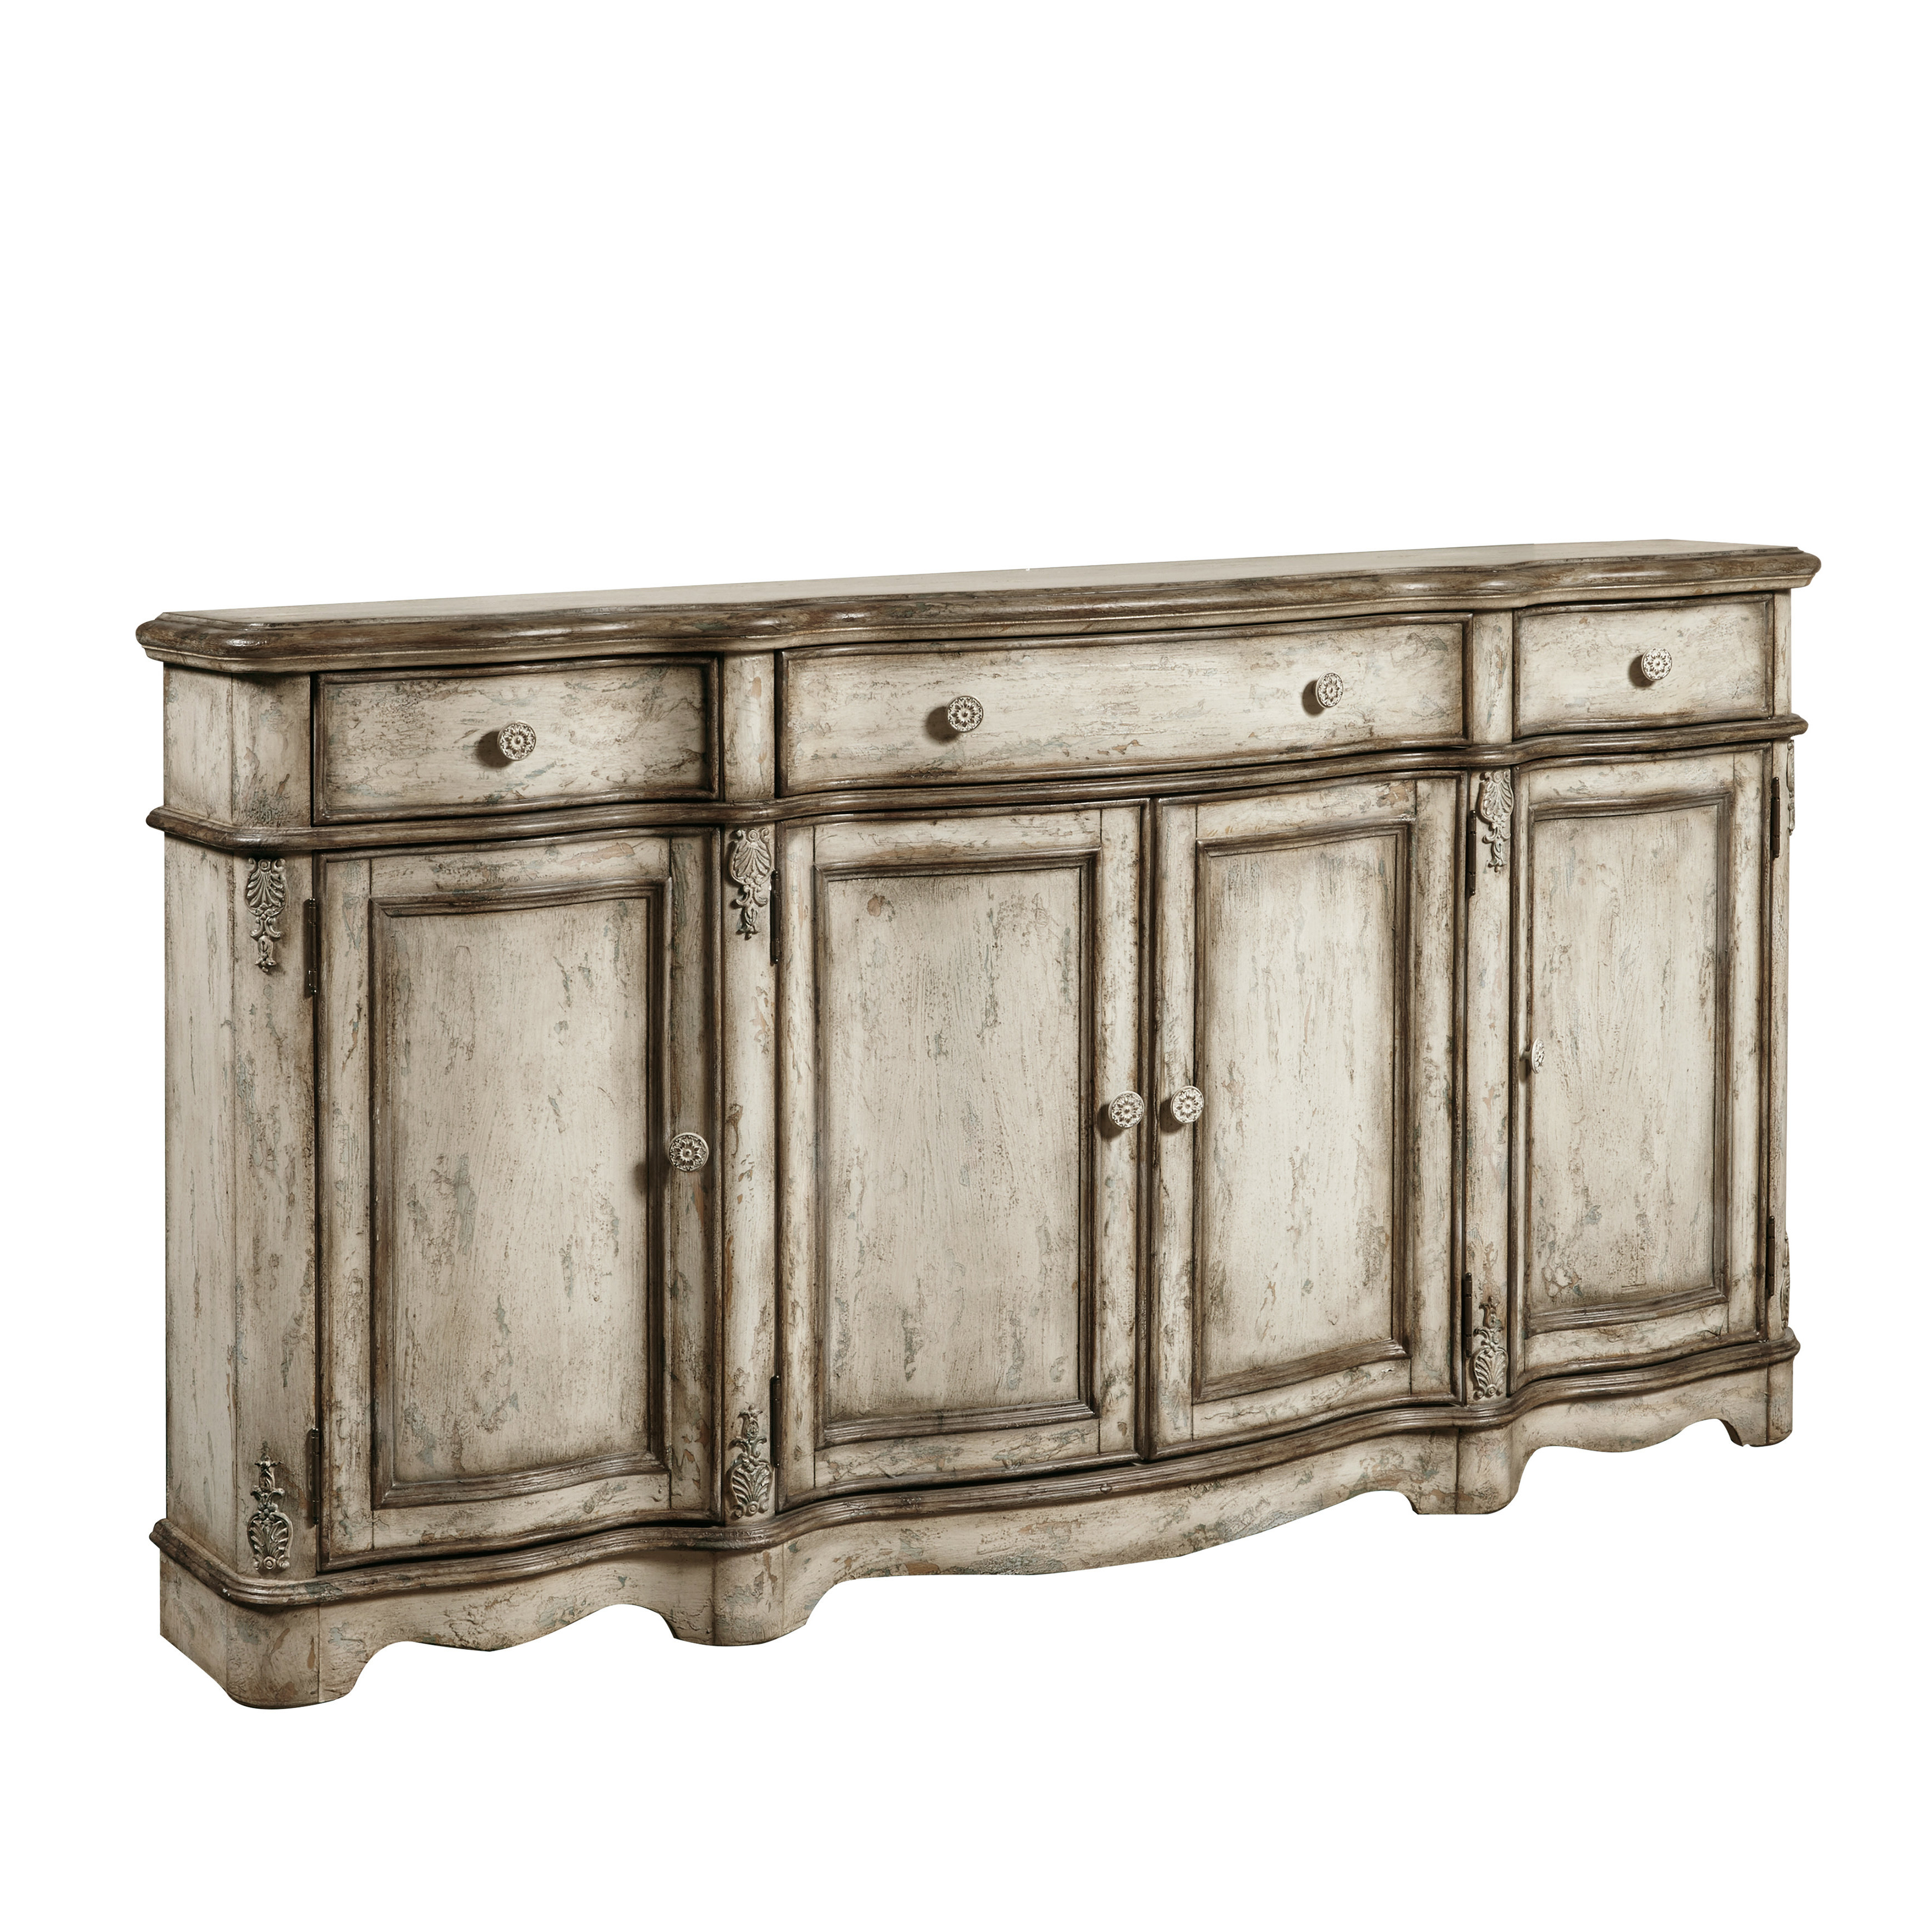 Farmhouse & Rustic White Sideboards & Buffets | Birch Lane With Regard To Ames Sideboards (View 7 of 20)